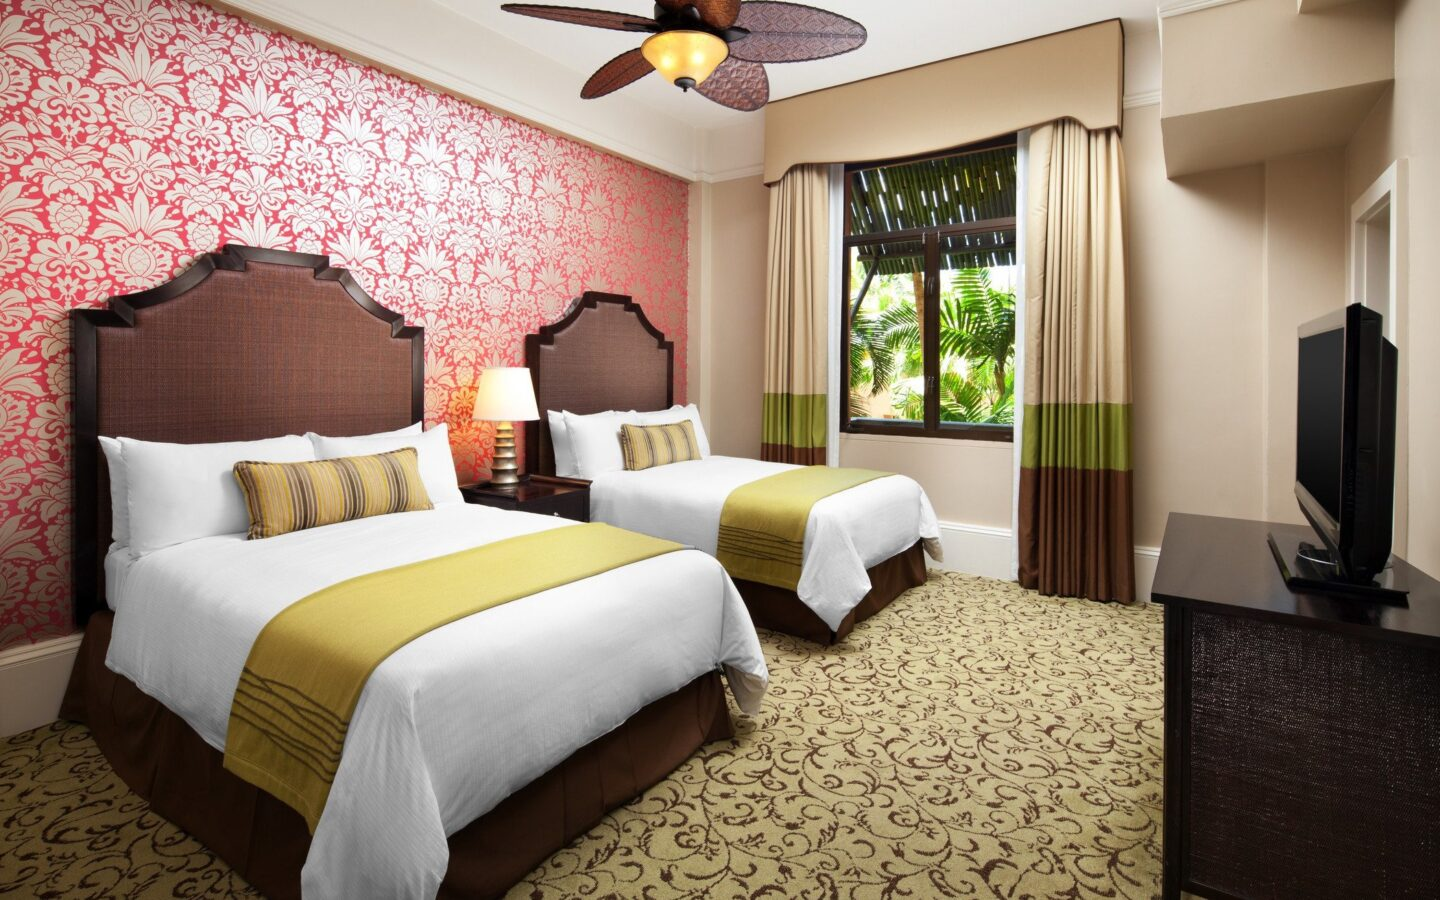 hotel room with 2 queen beds, pink and white flowered wallpaper, and garden view window